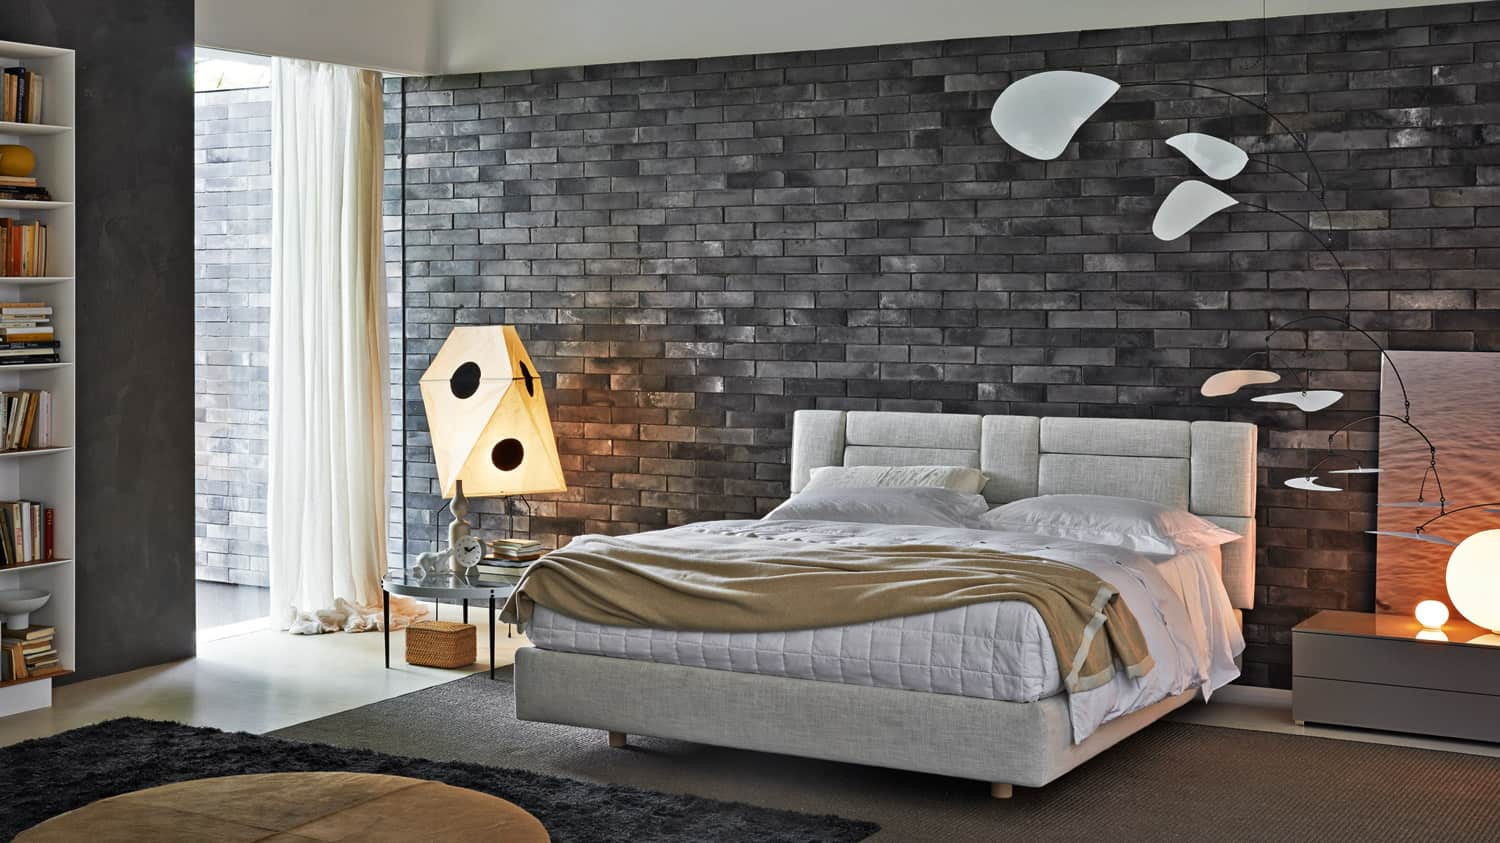 50 modern bedroom design ideas for Bedroom decoration 2016